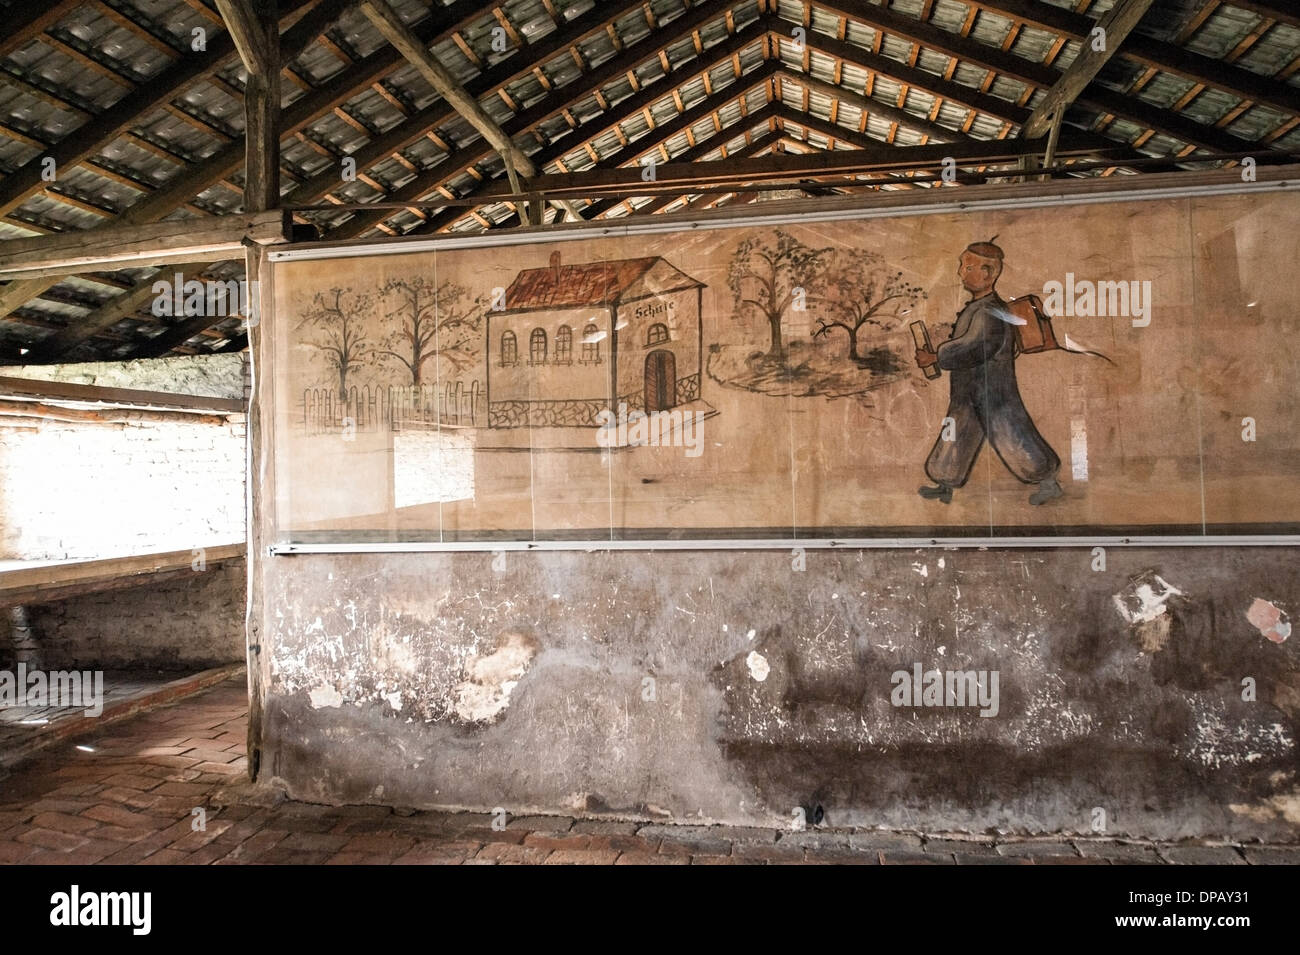 Children's drawing inside barracks that housed victims, Auschwitz II Birkenau concentration camp, Oswiecim, Poland, Europe - Stock Image